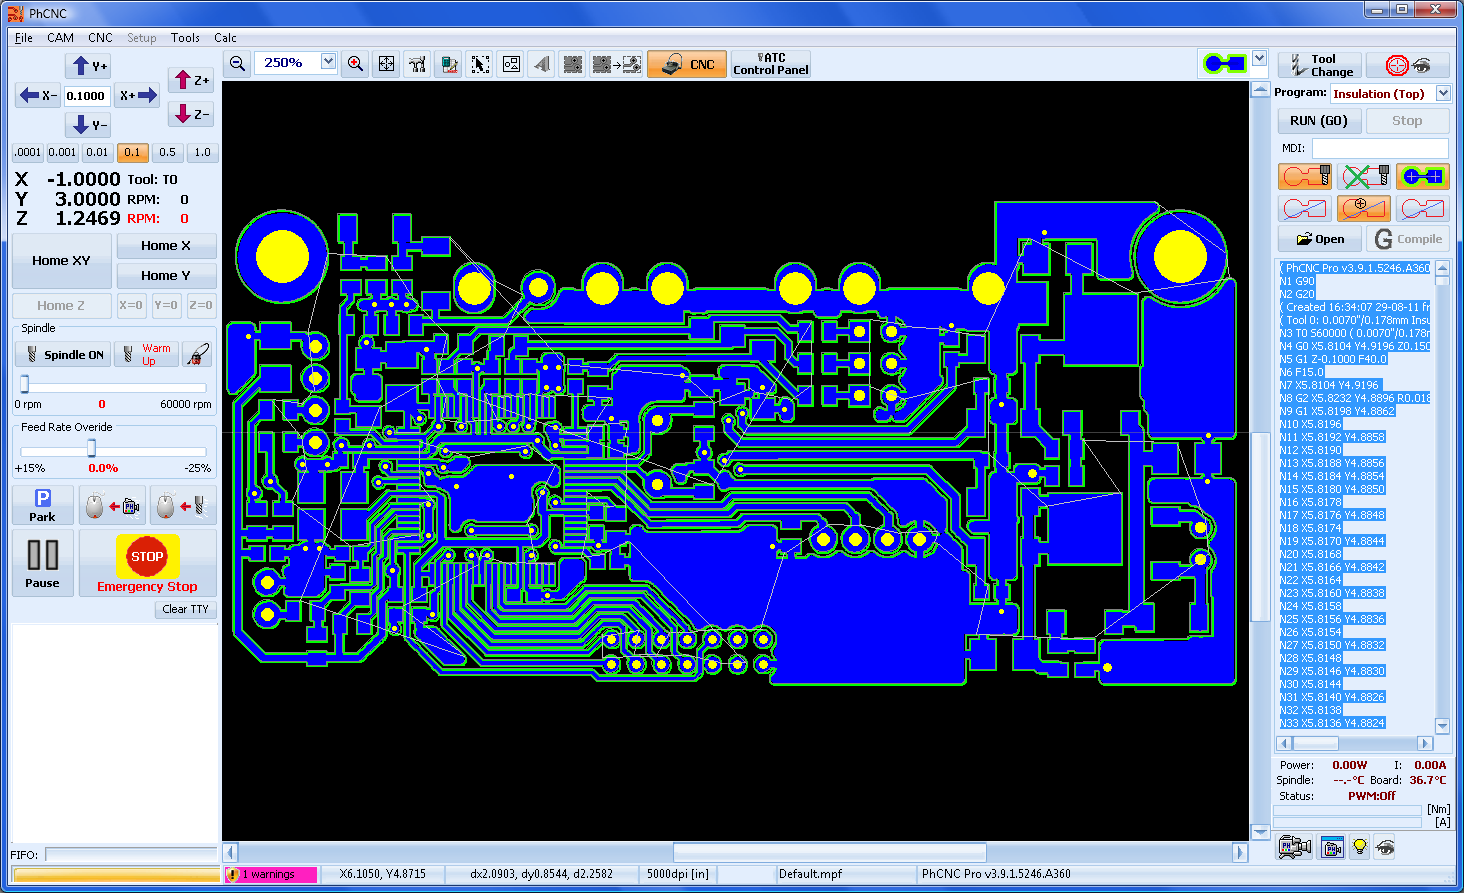 New Pcb Design Software Cnc Camsoftware Circuitcam V7